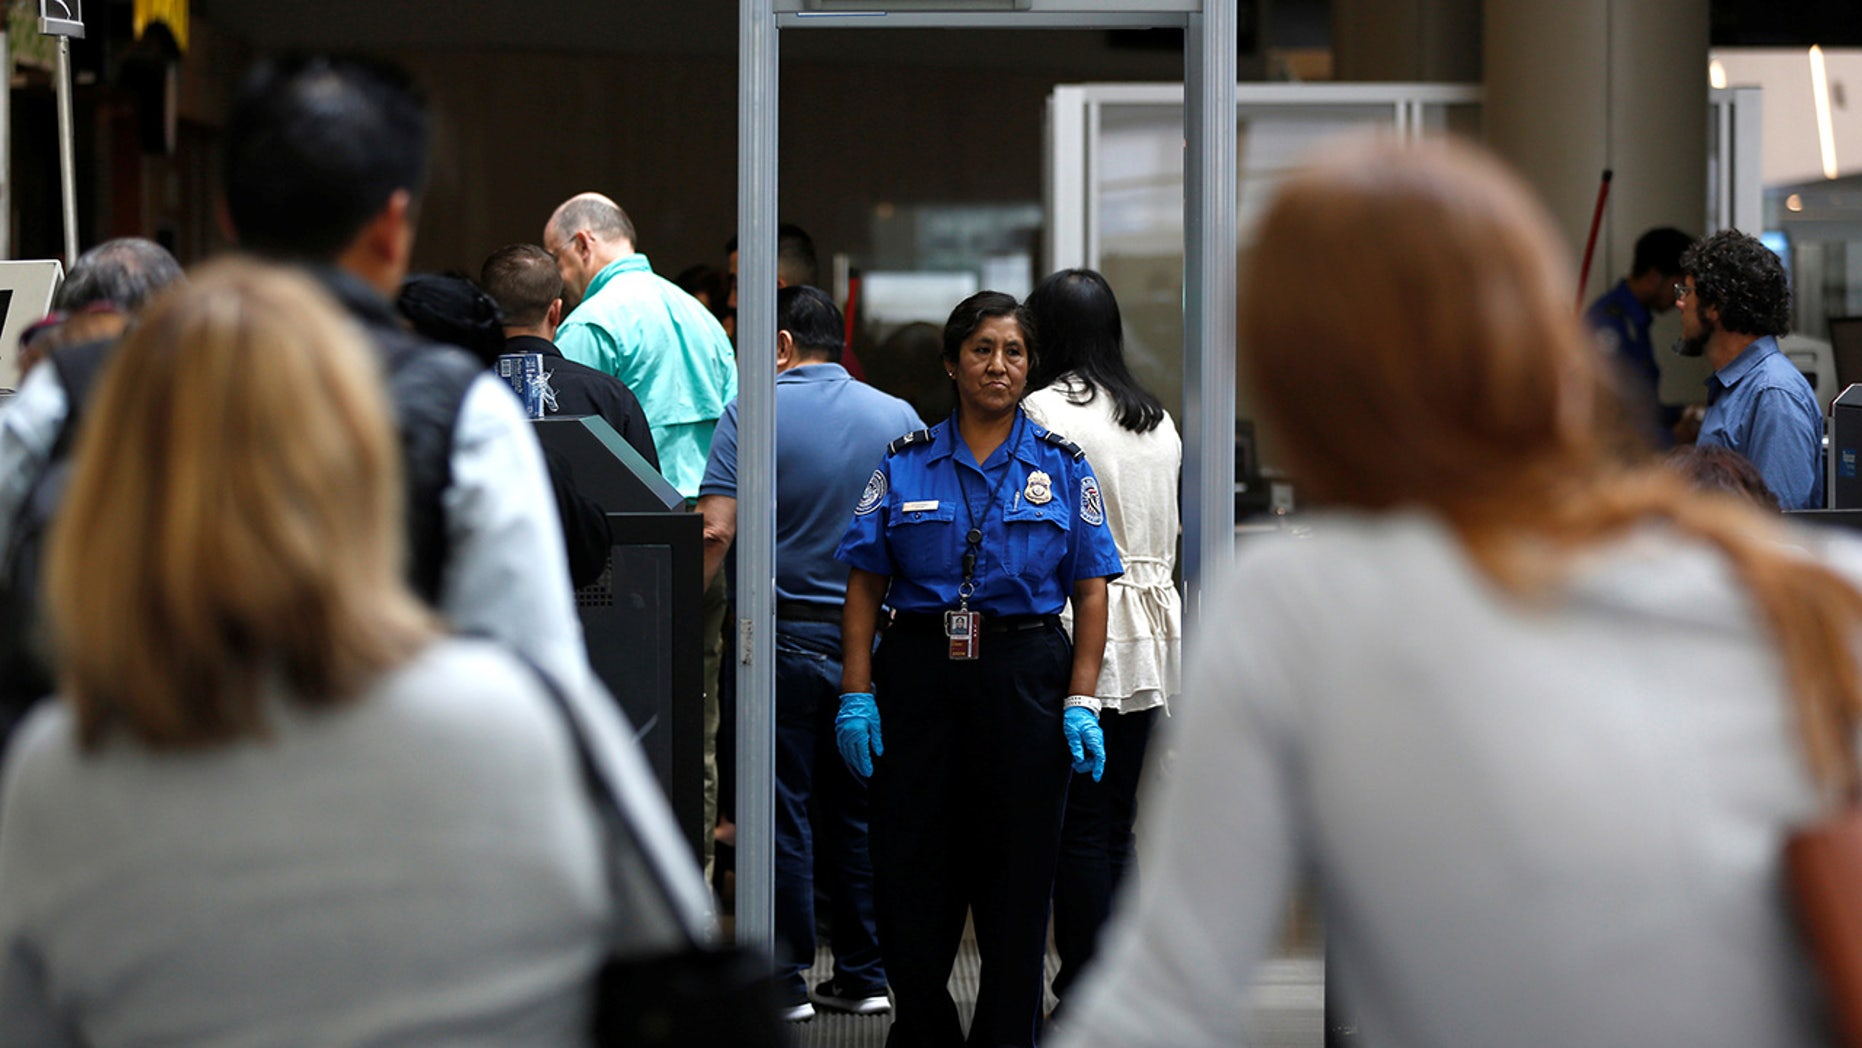 San Jose airport evacuates terminal to investigate security breach.